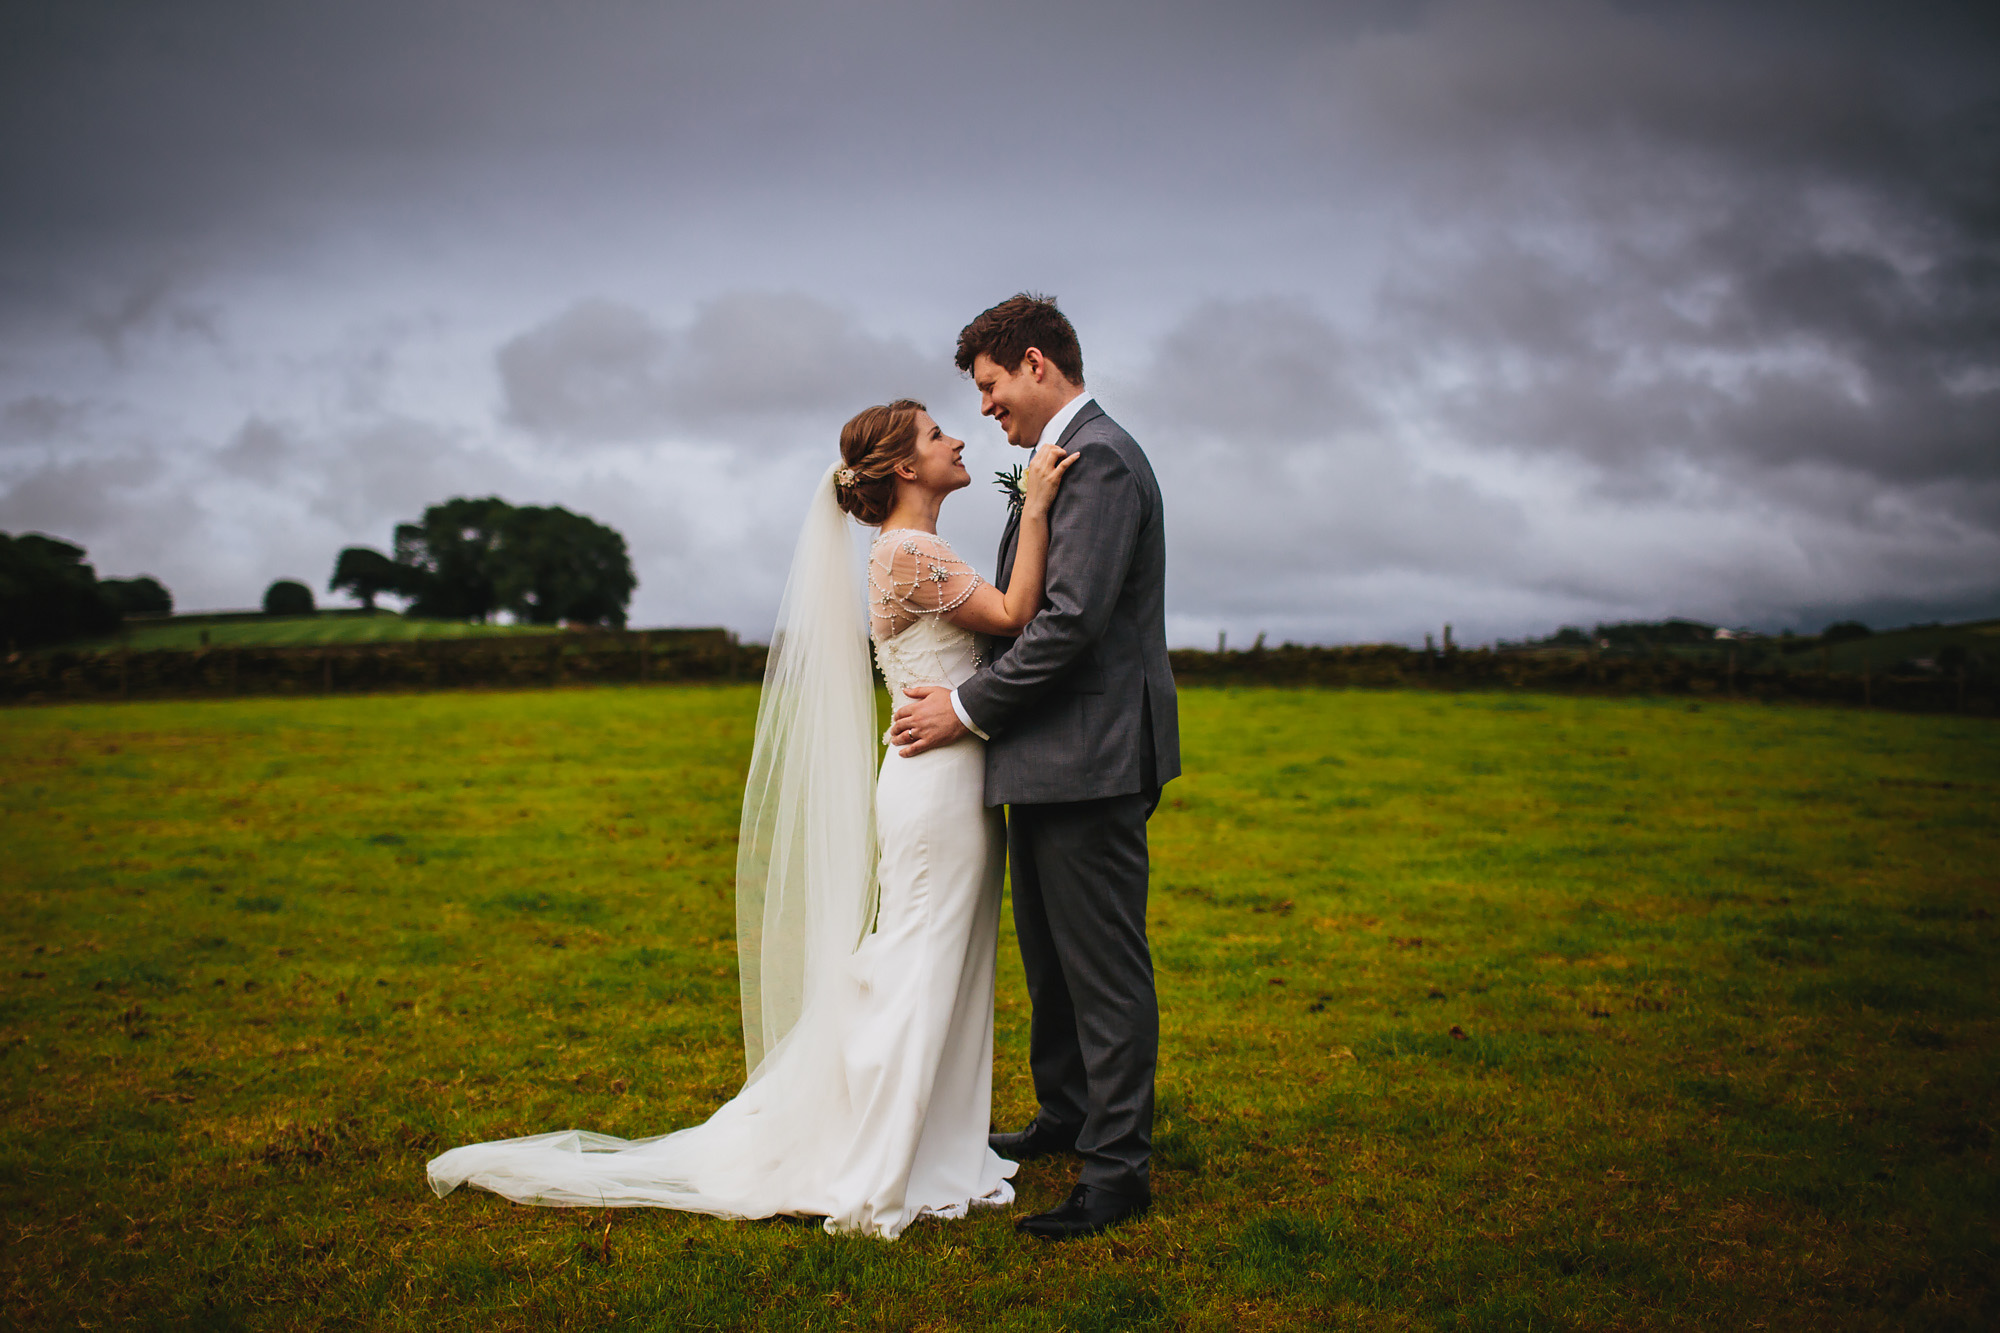 Bride and groom smiling at each other in a field